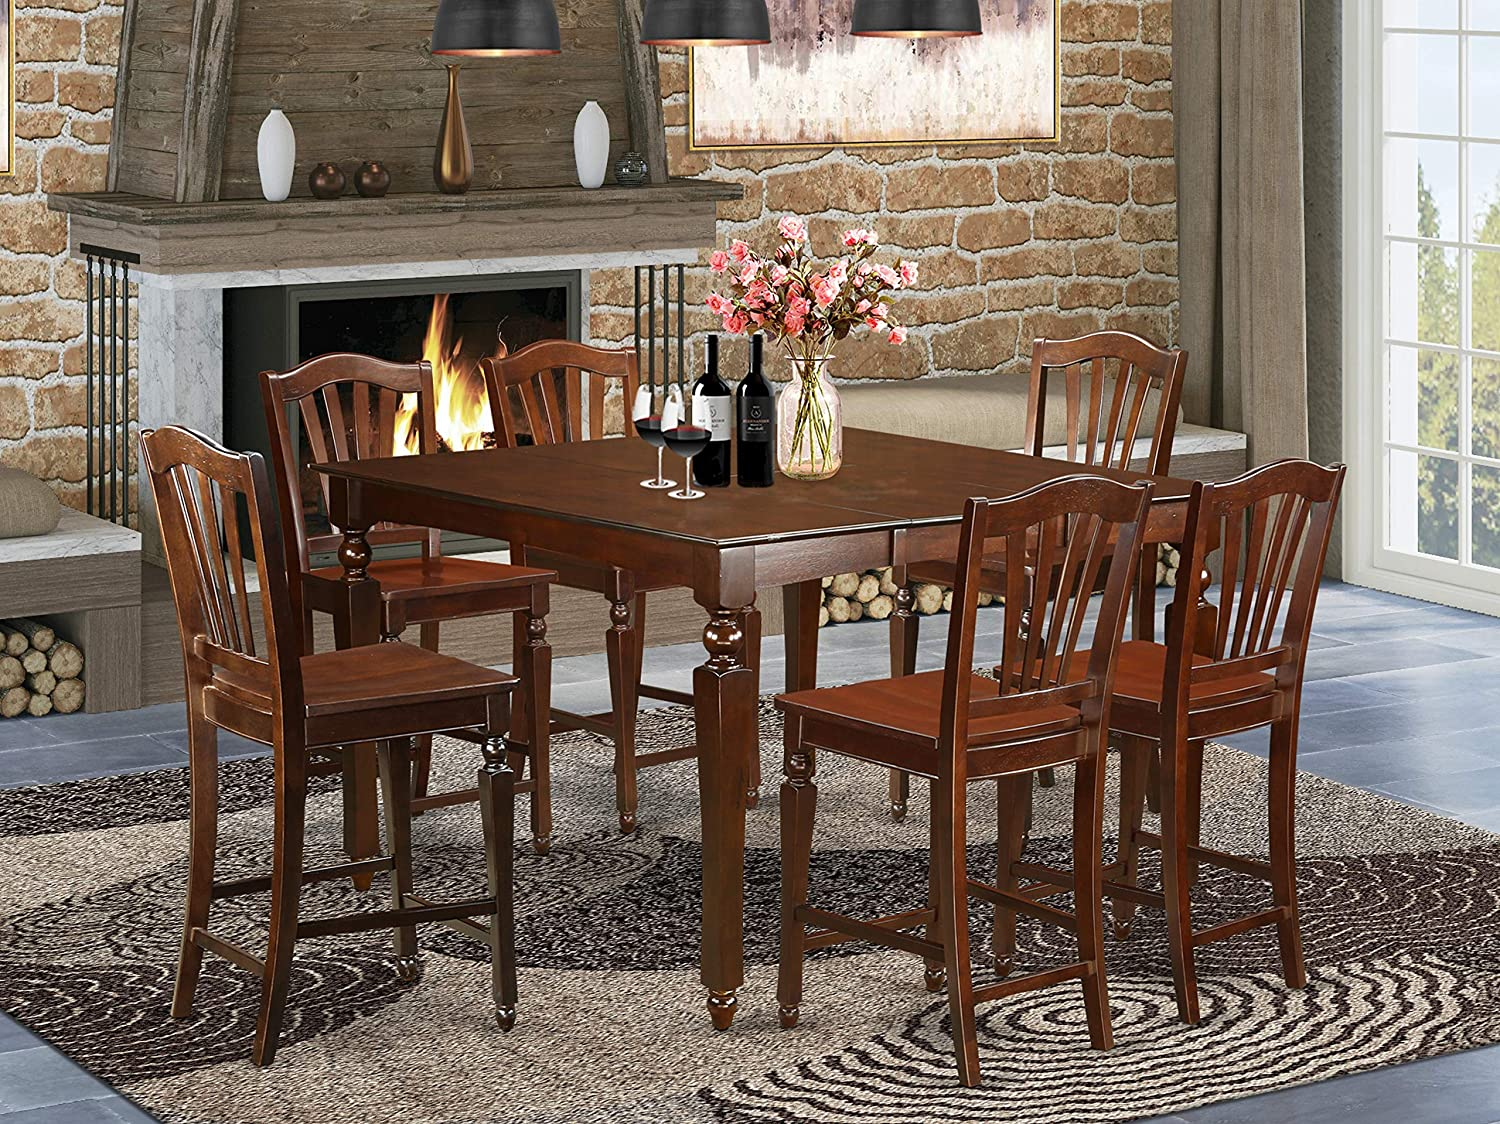 7 PC counter height Dining set- Square pub Table and 6 counter height Chairs